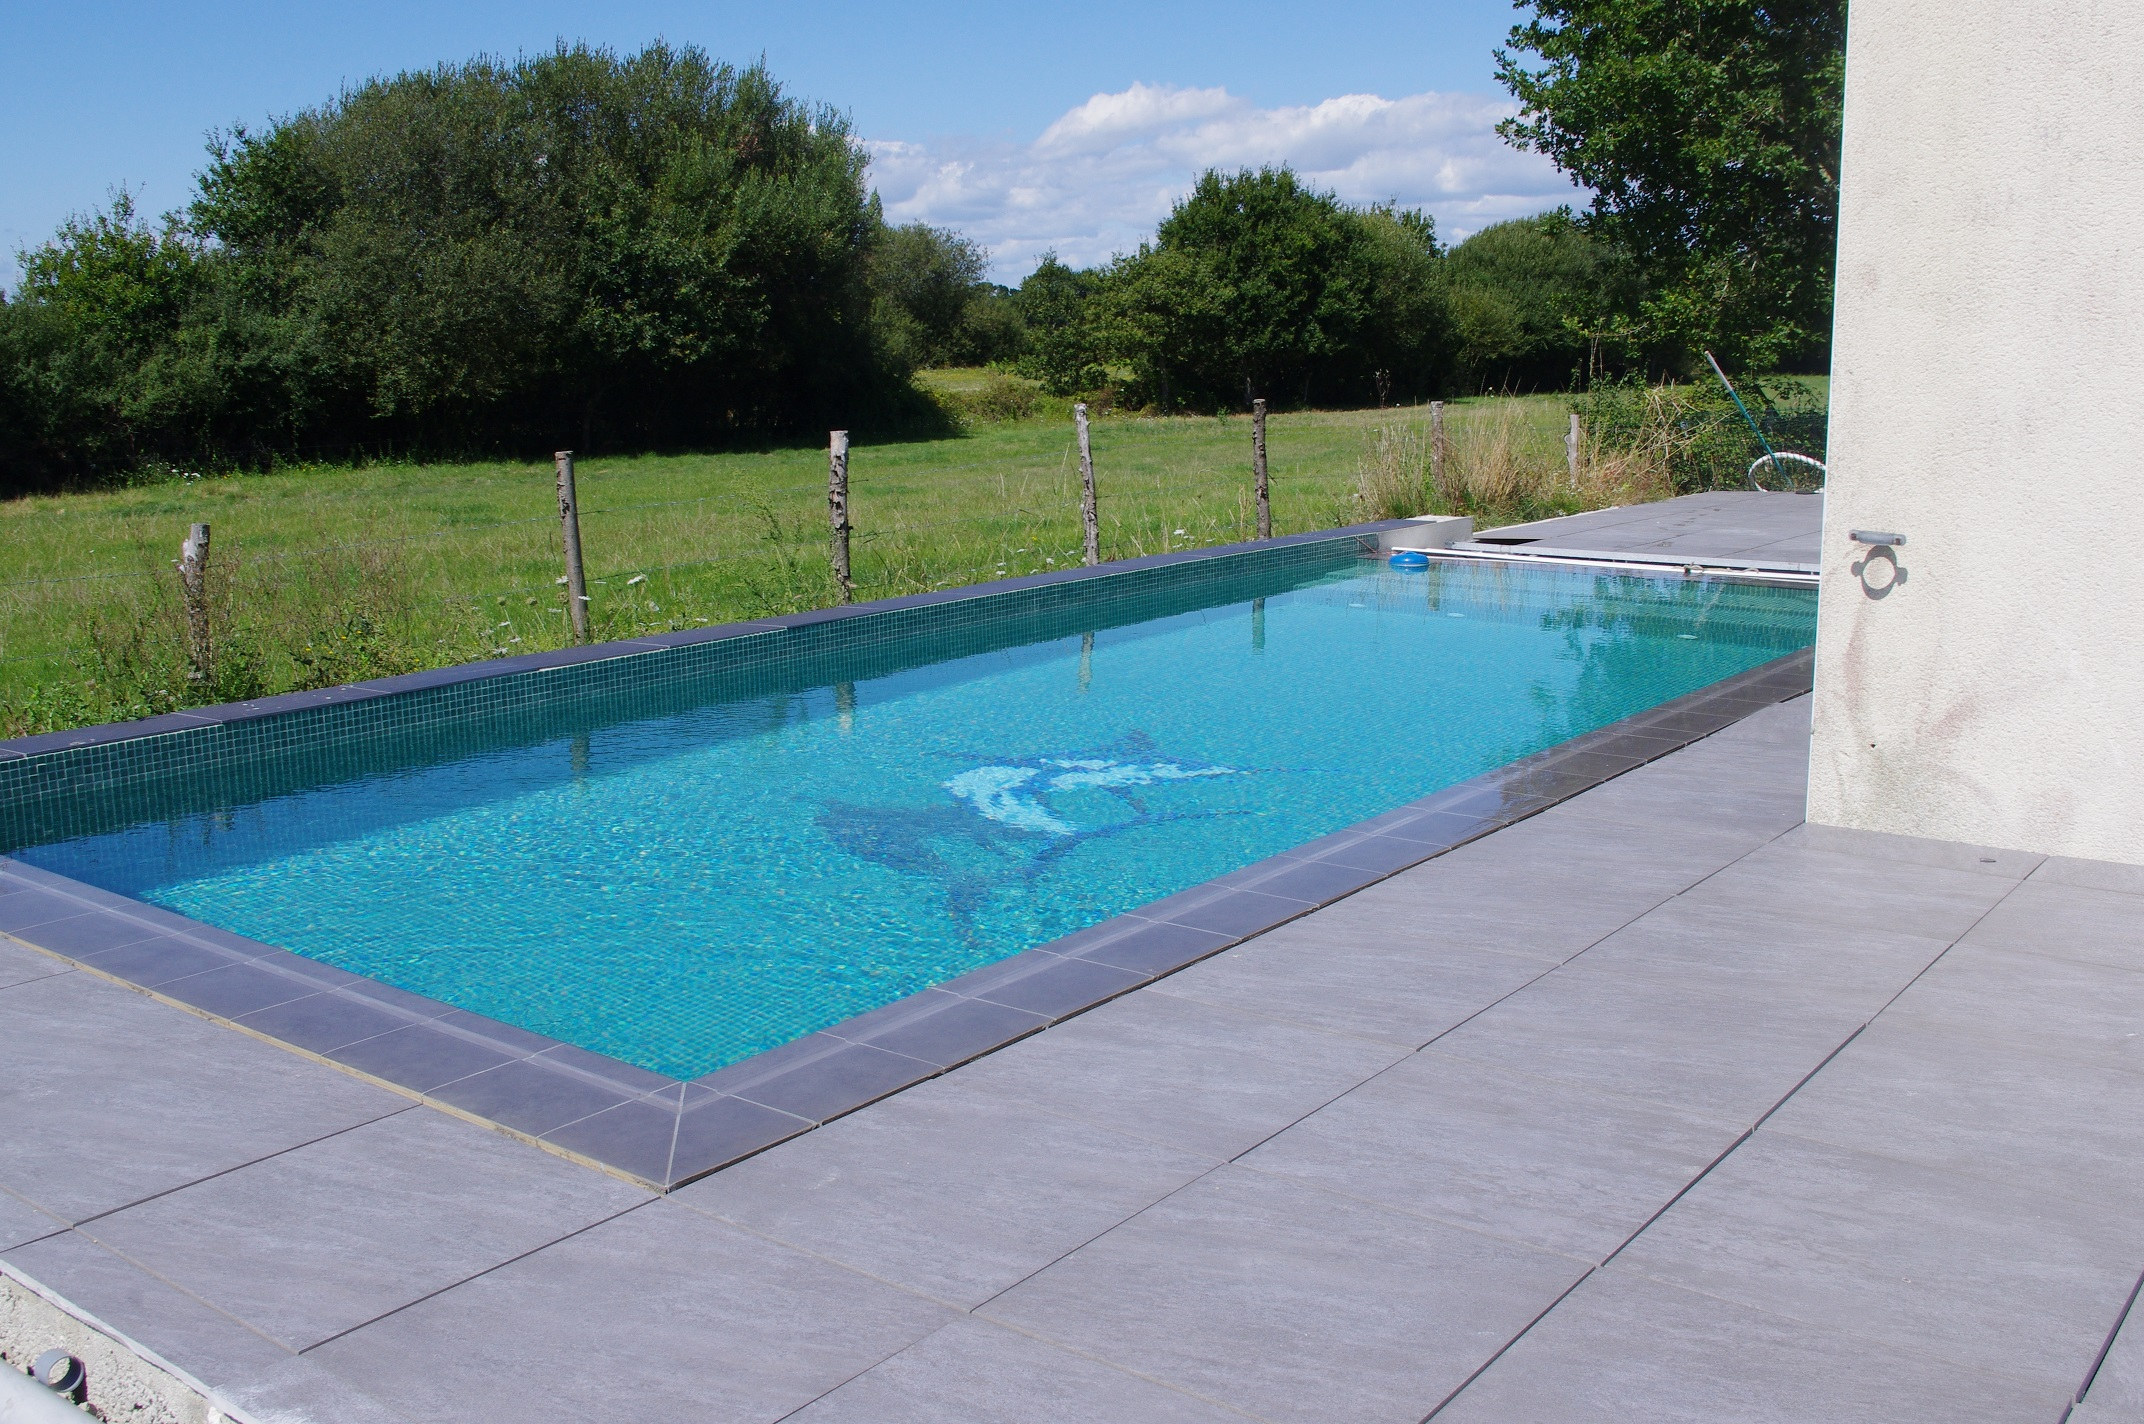 Carrelage design carrelage autour piscine moderne for Carrelage de piscine